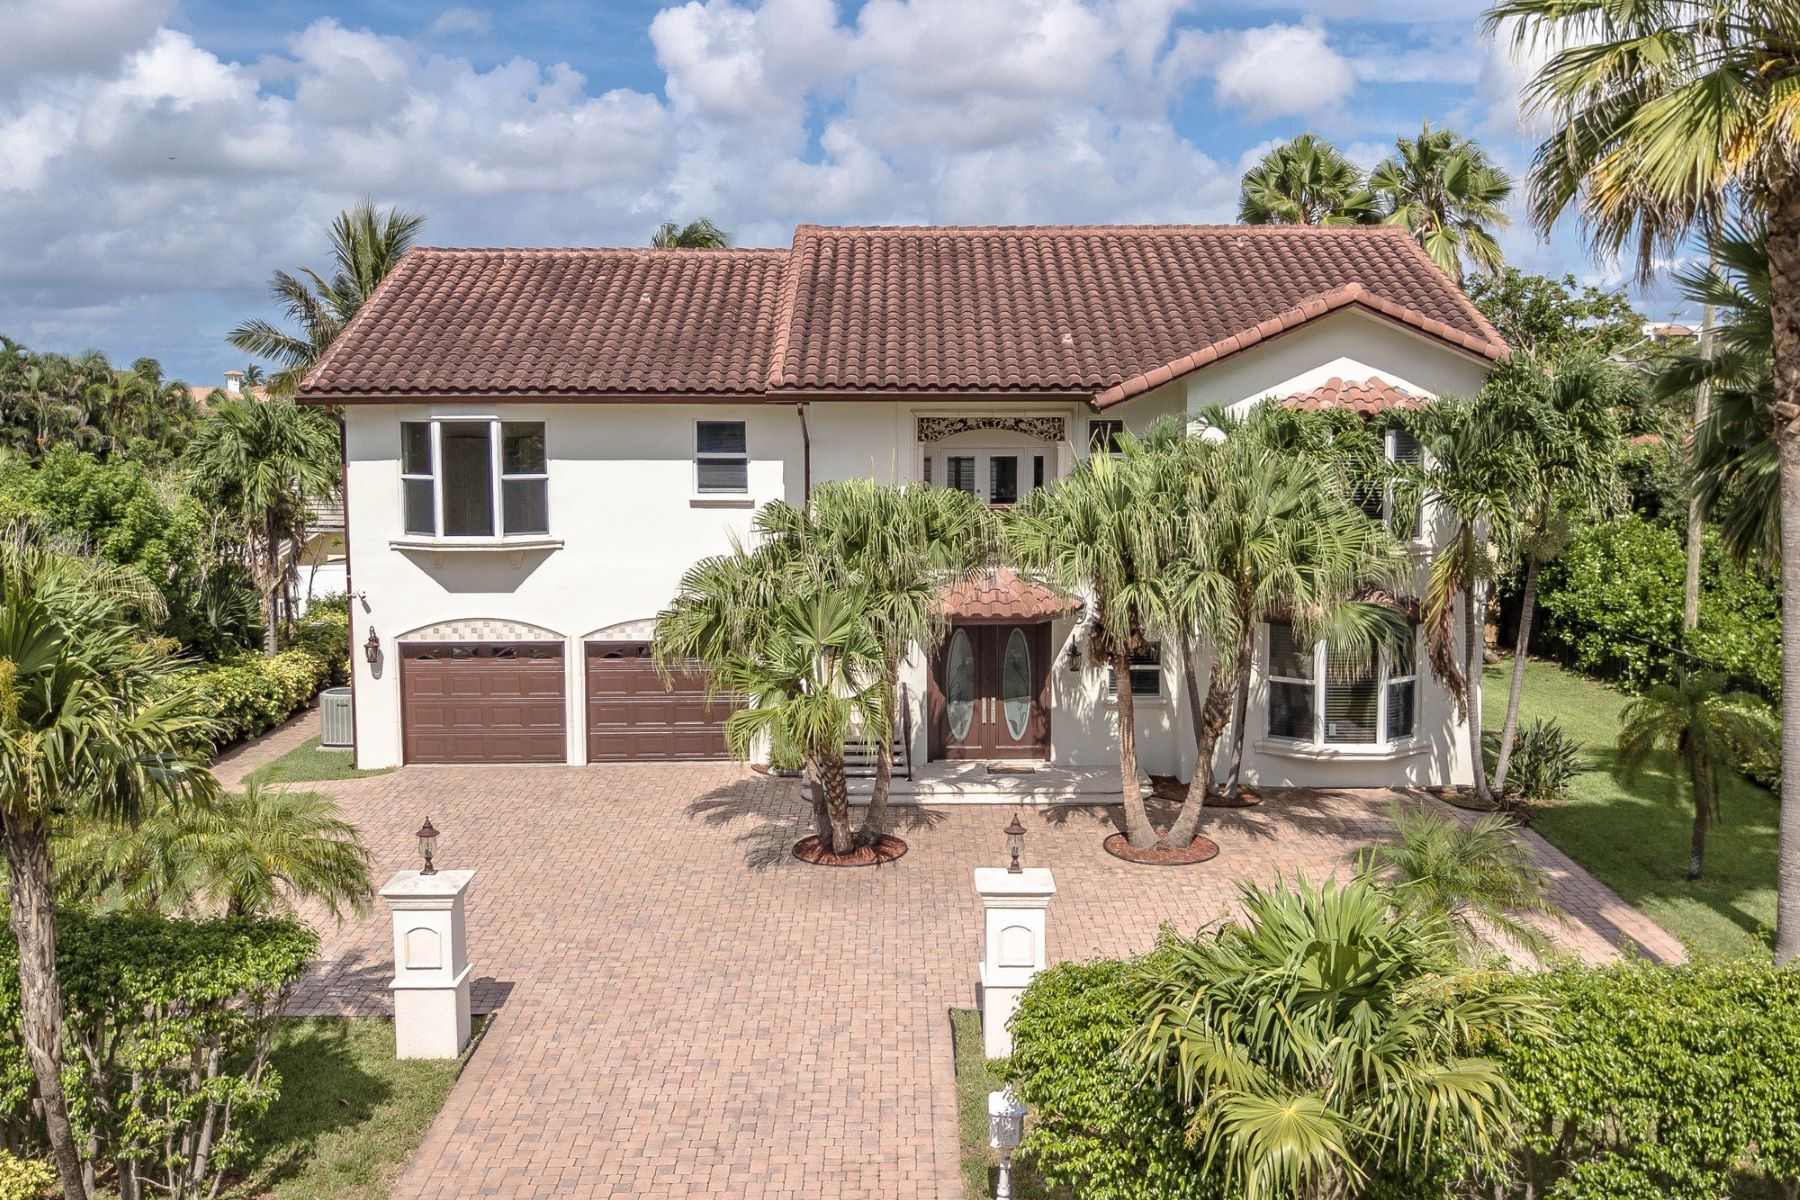 Multi-Family Home for Active at 4108 S Ocean Blvd , Highland Beach, FL 33487 4108 S Ocean Blvd Highland Beach, Florida 33487 United States